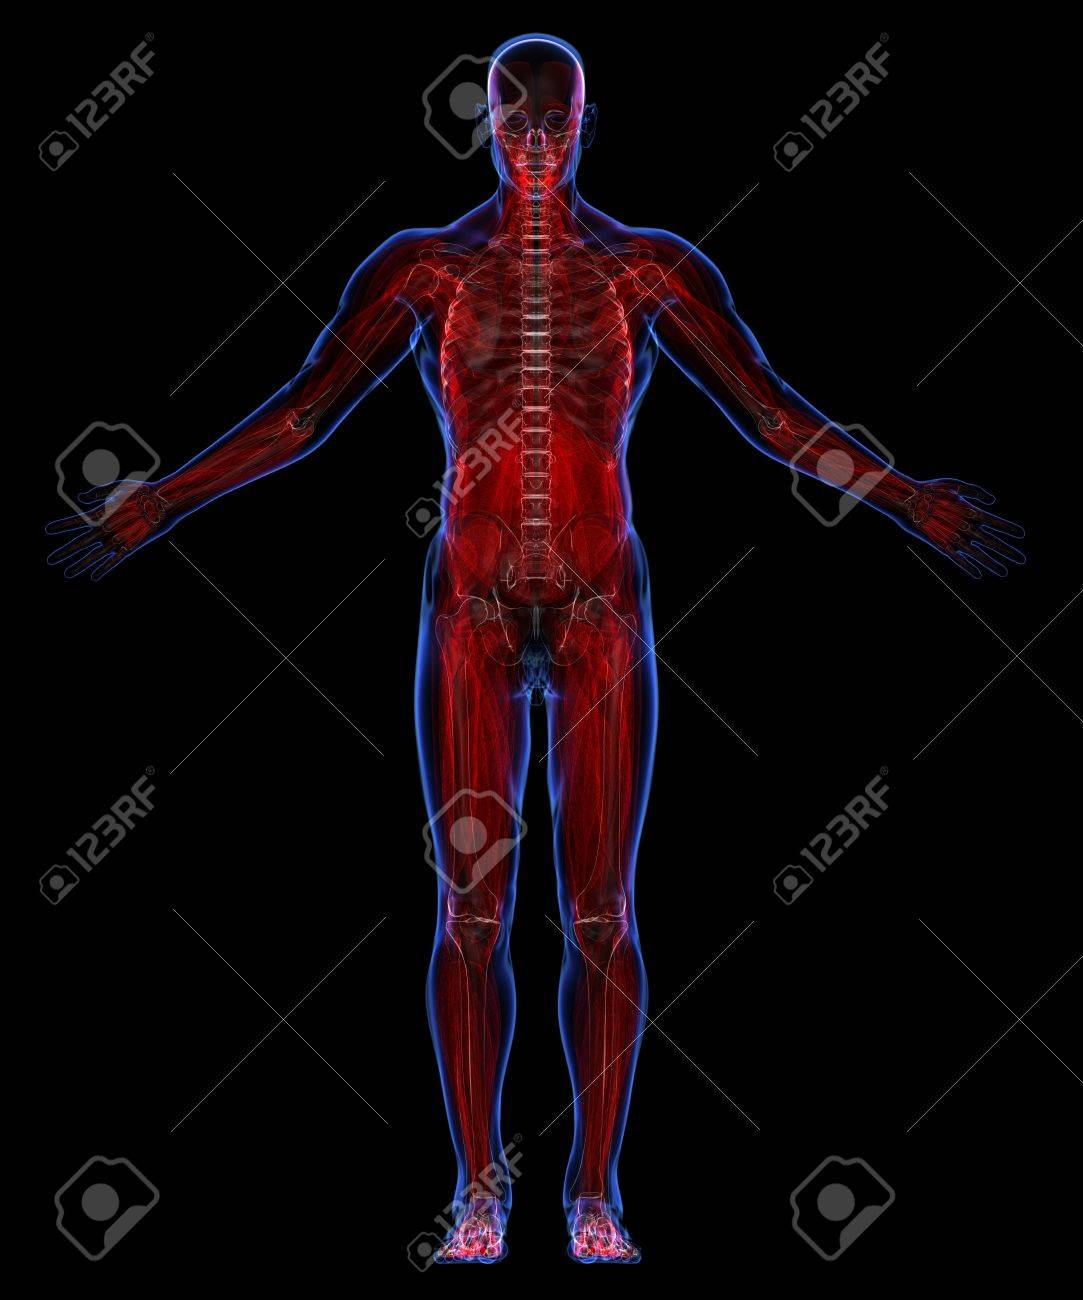 Human Muscular System Stock Photo Picture And Royalty Free Image